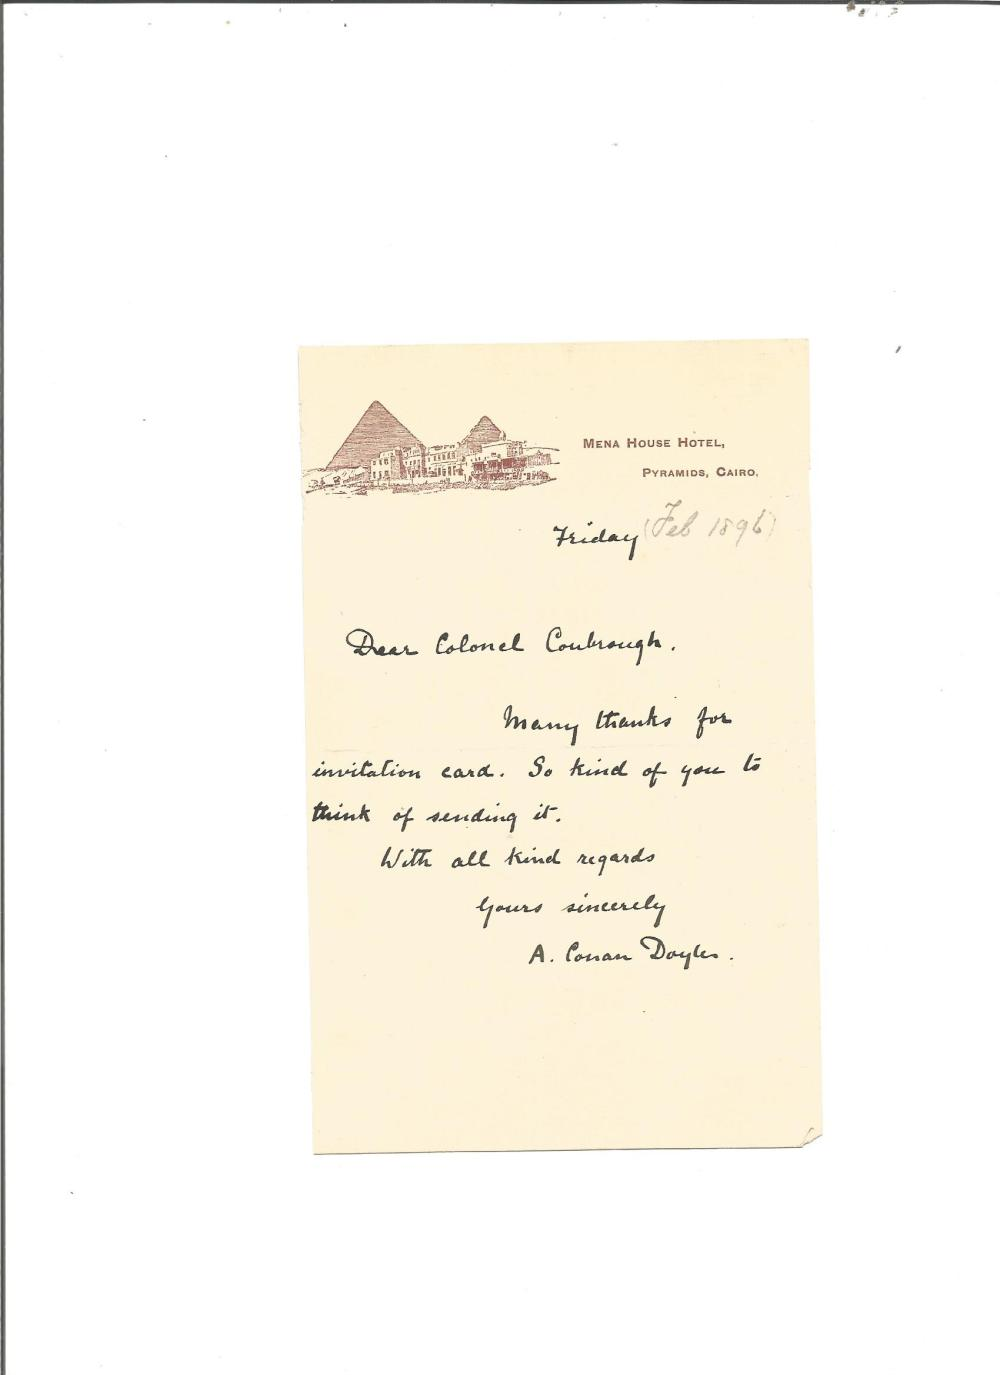 Arthur Conan Doyle ALS from the Pyramids dated 1896. Good Condition. All signed pieces come with a